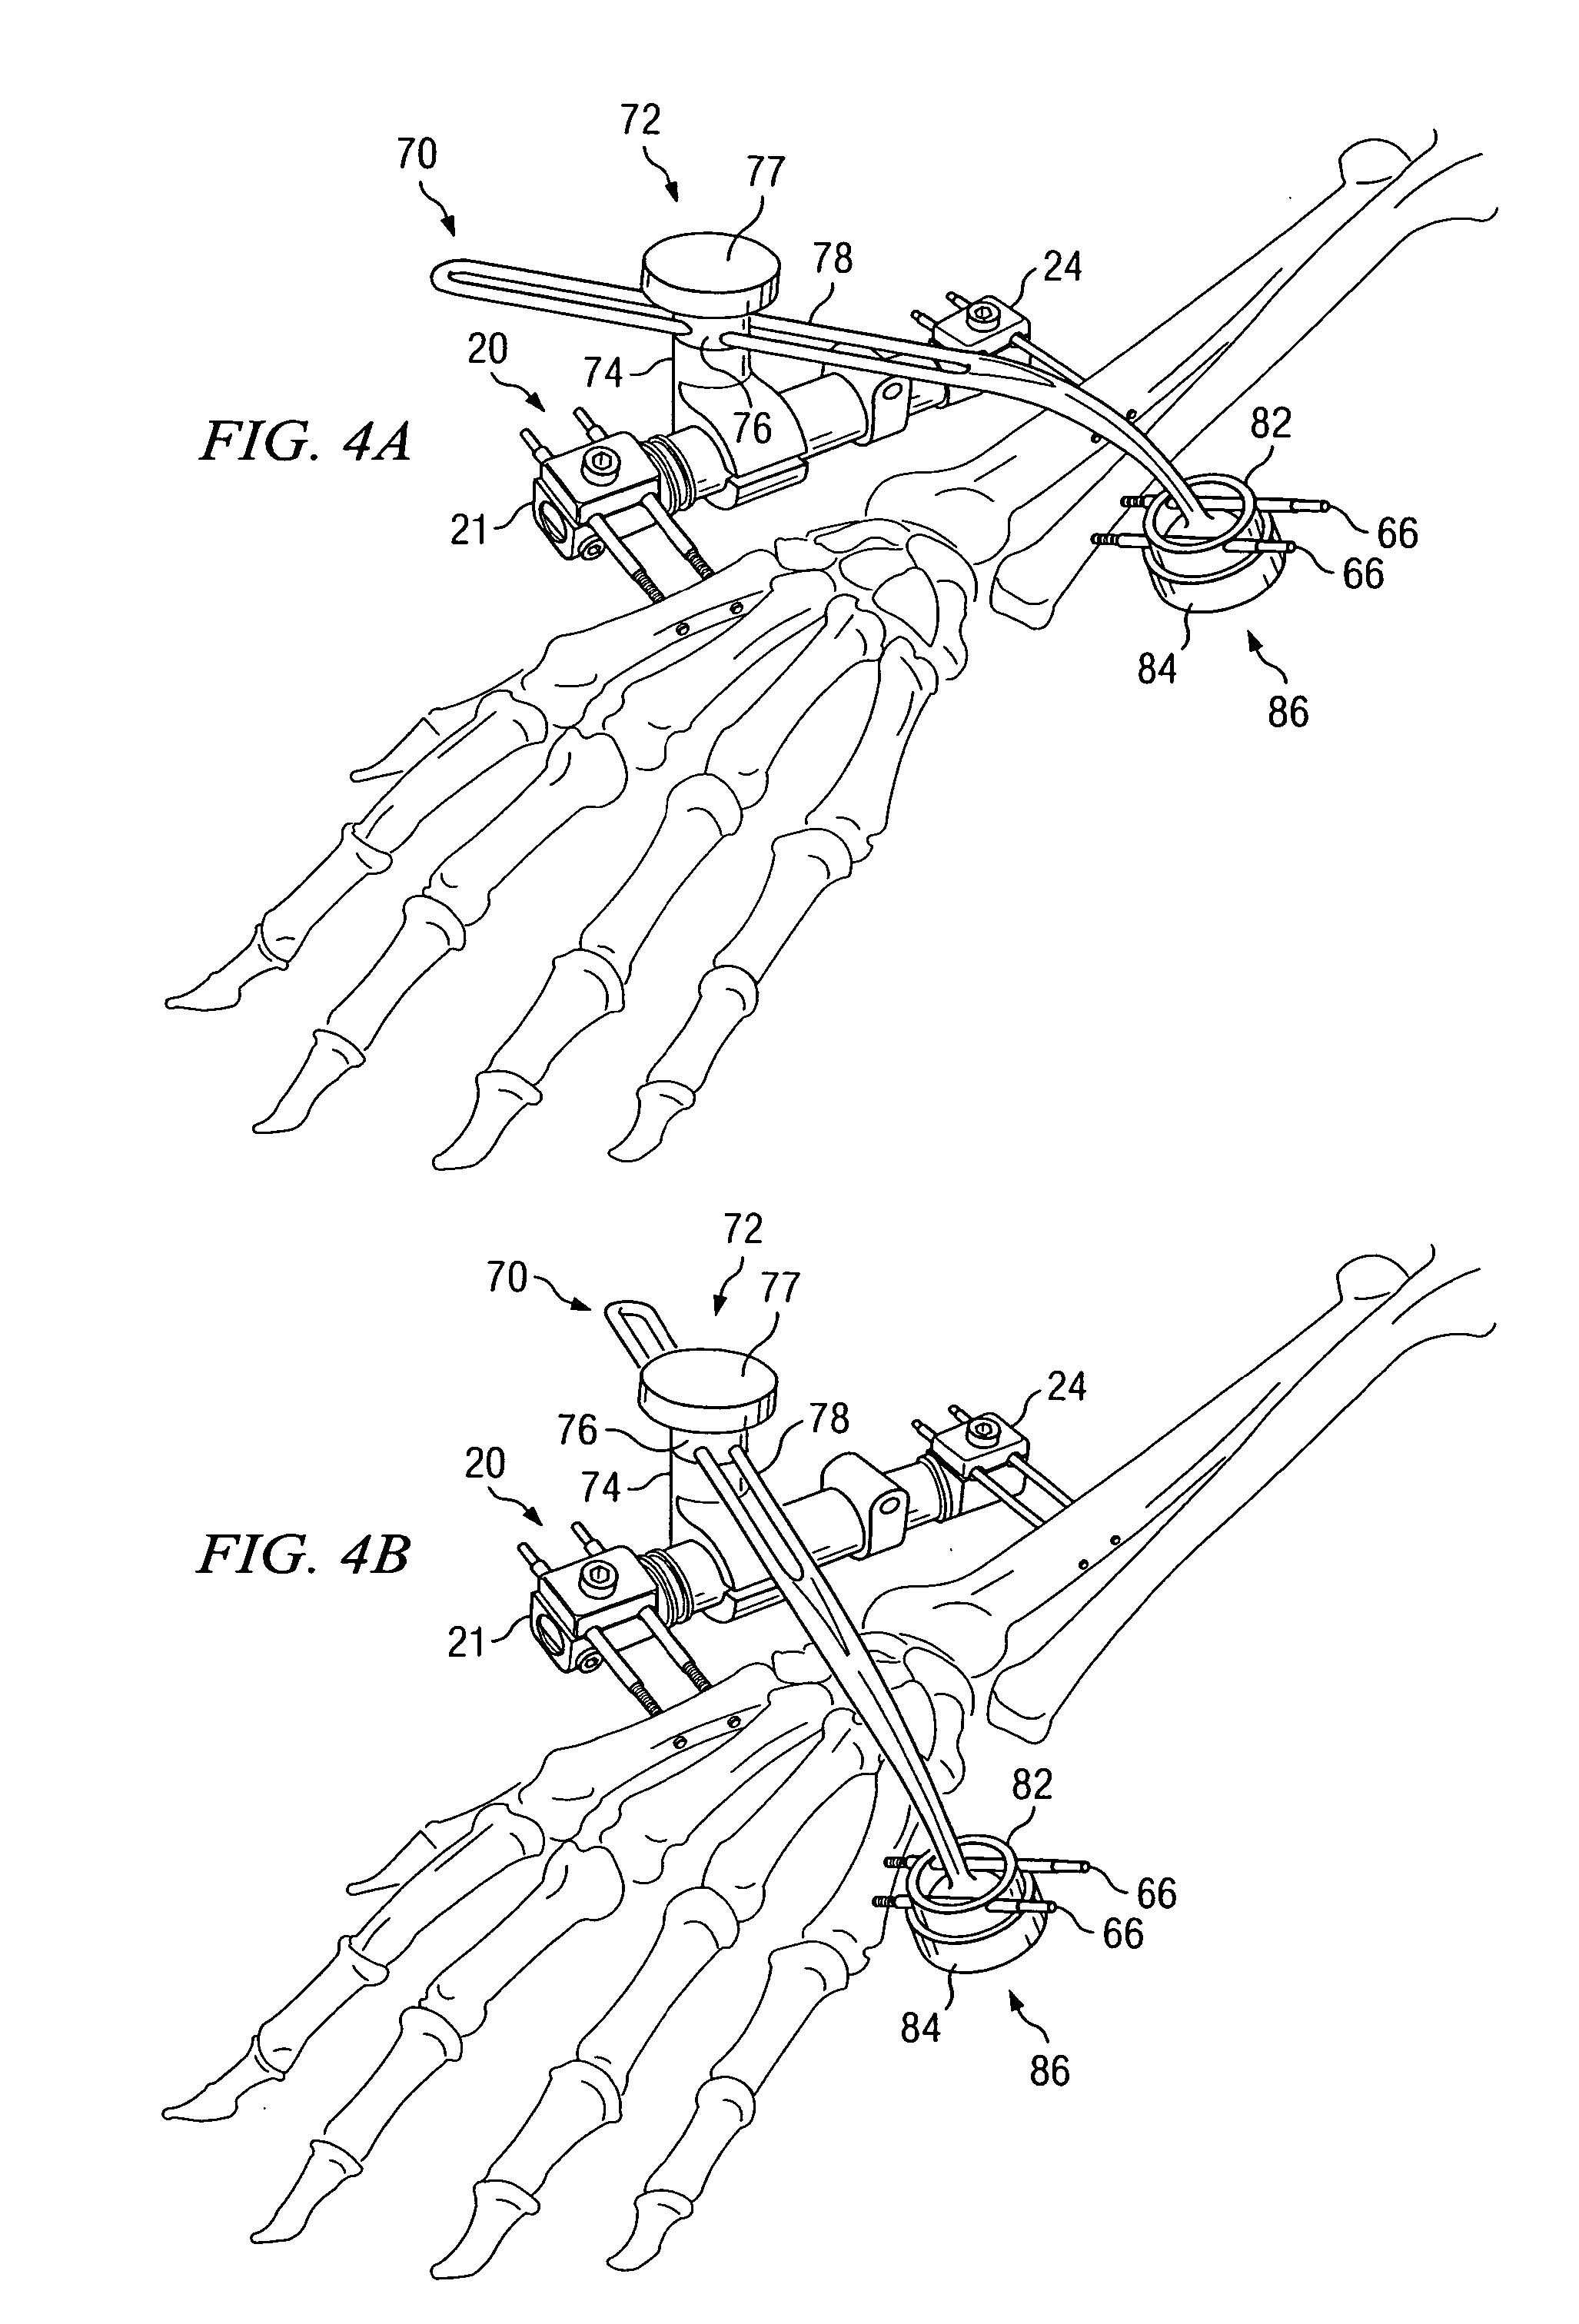 patent us20040133200 apparatus and method for maintaining bones in External Fixator Wrist patent drawing